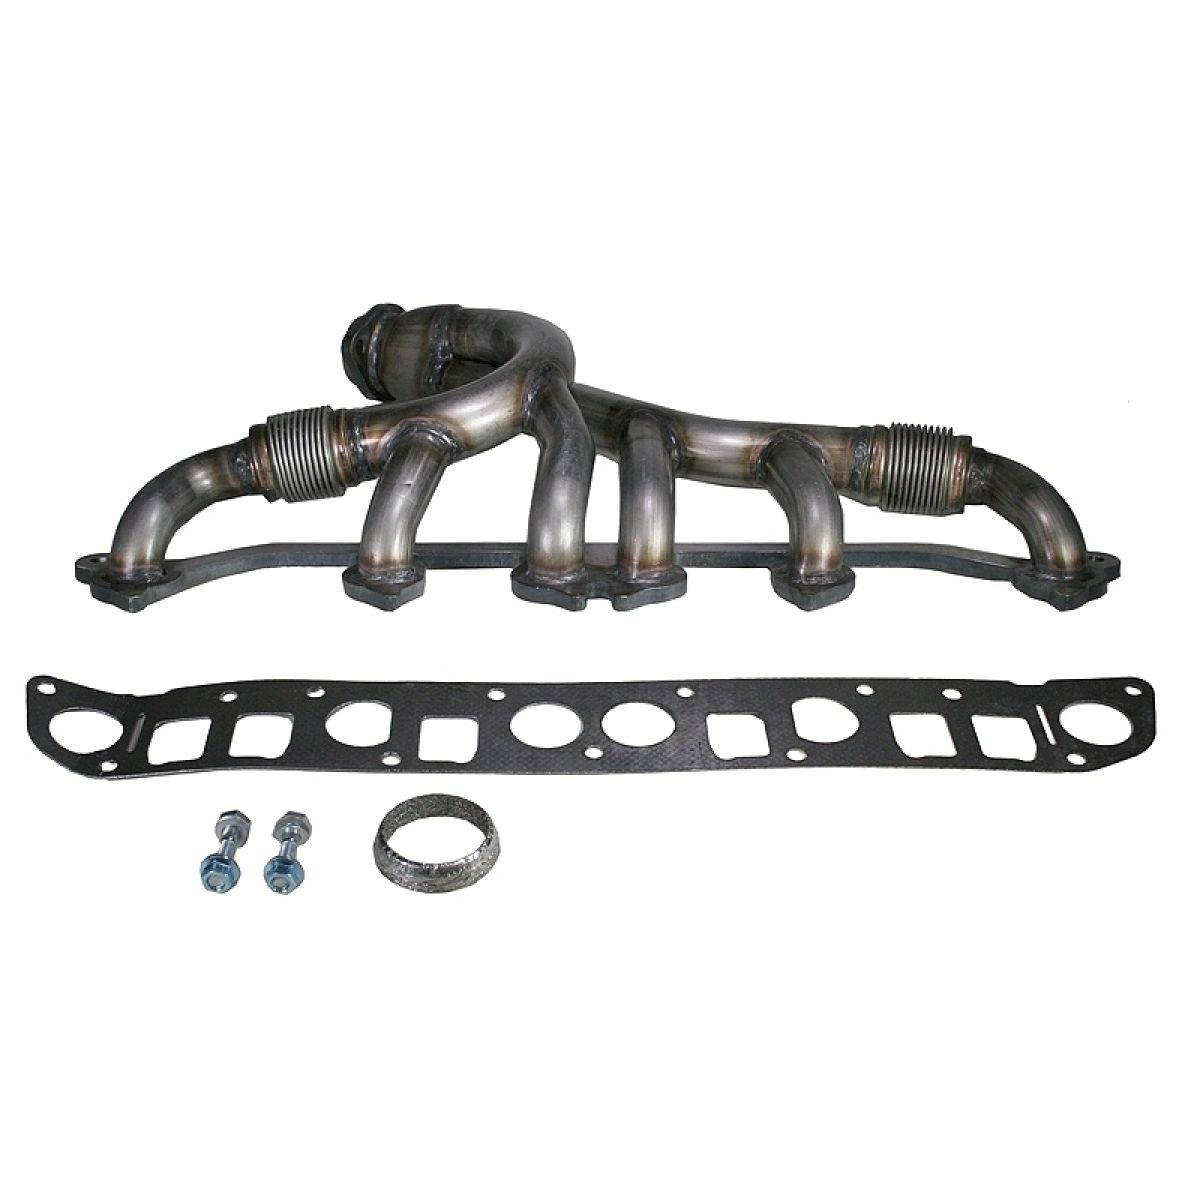 Stainless Steel Exhaust Manifold Amp Gasket Kit For Grand